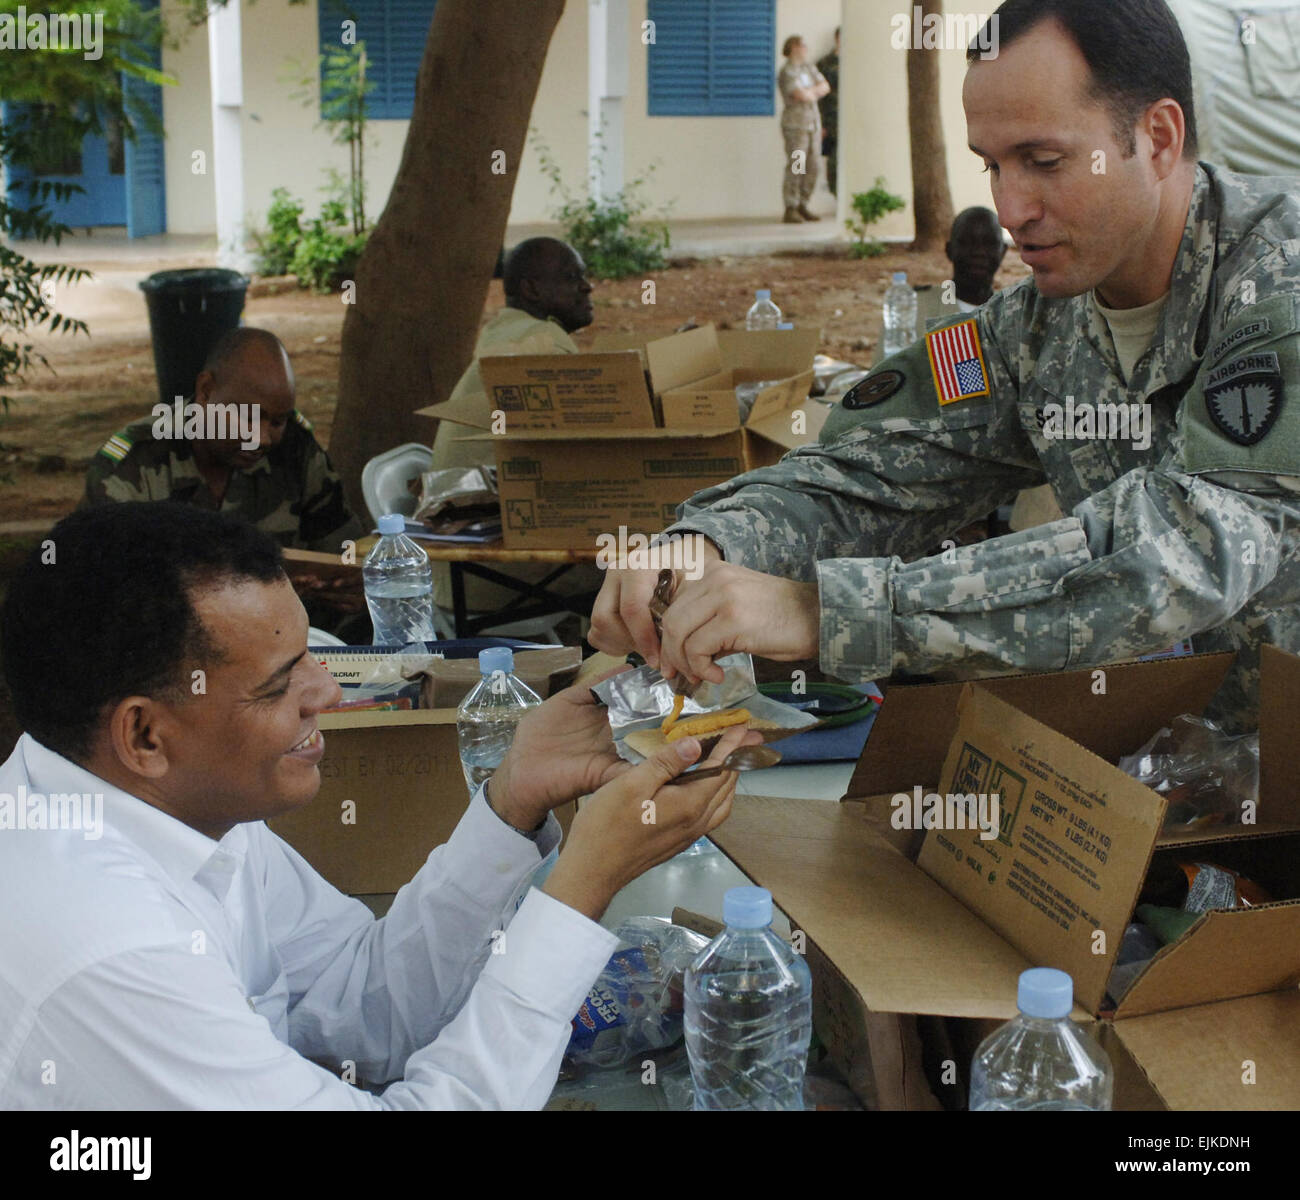 U.S. Army Lt. Col. David Sigmund, Special Operations Command-Europe, Psychological Operations, assists a national Stock Photo